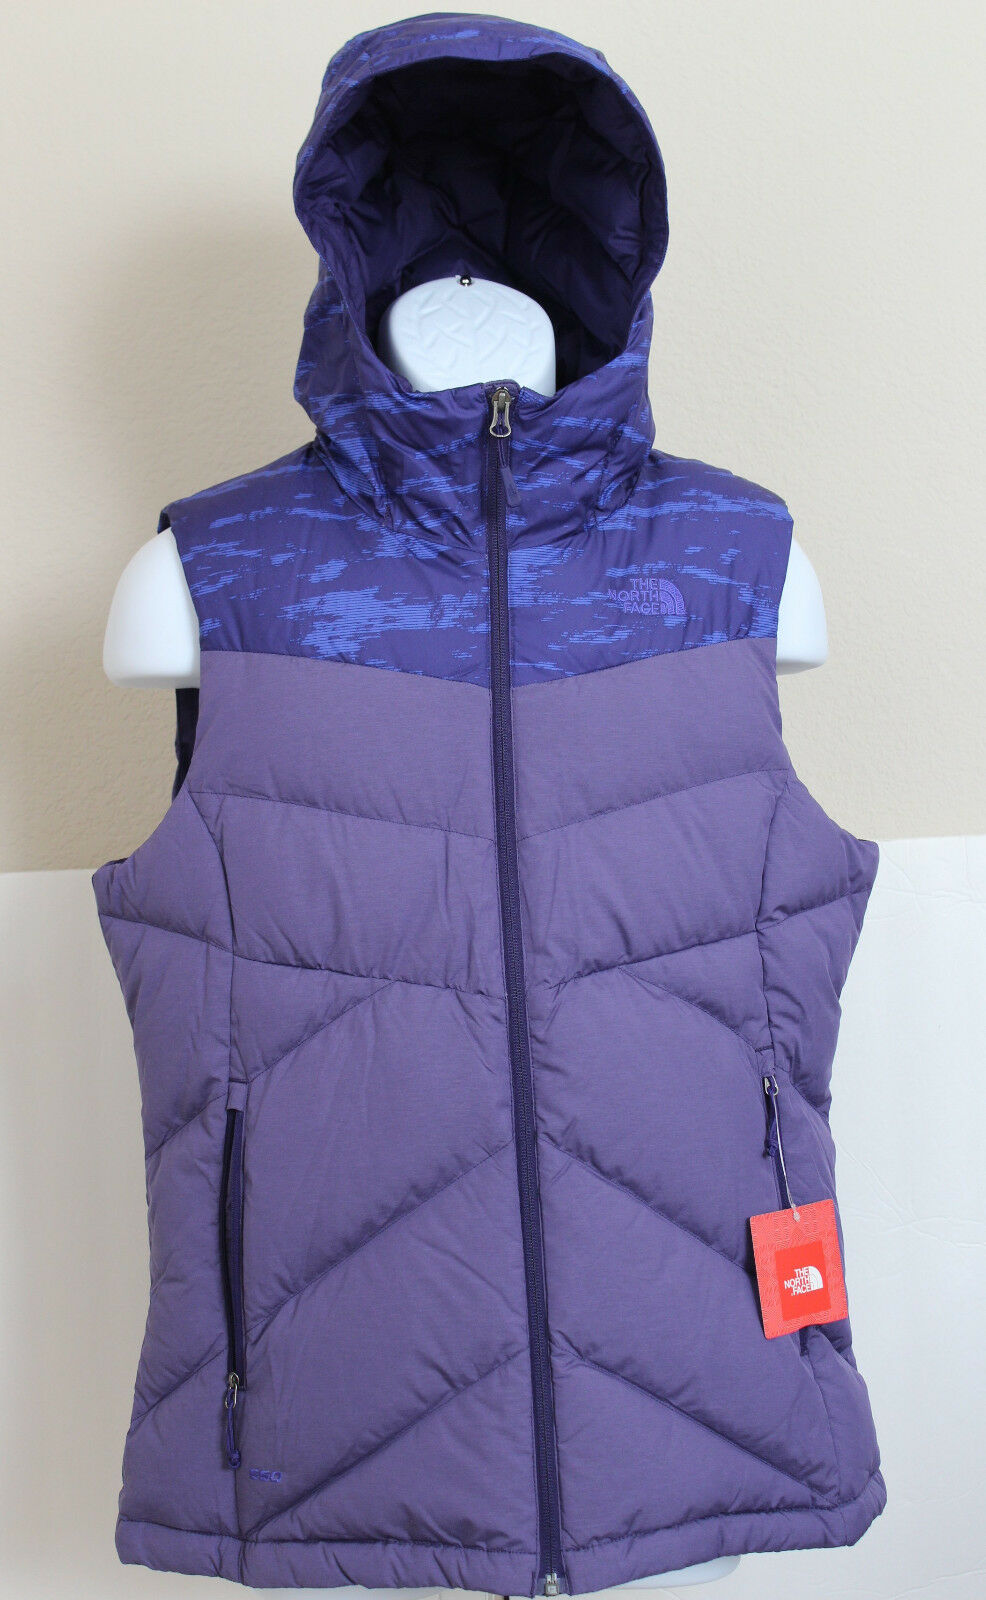 NWT THE NORTH FACE Womens Kailash Hooded 550 Down Vest Garnet Purple M